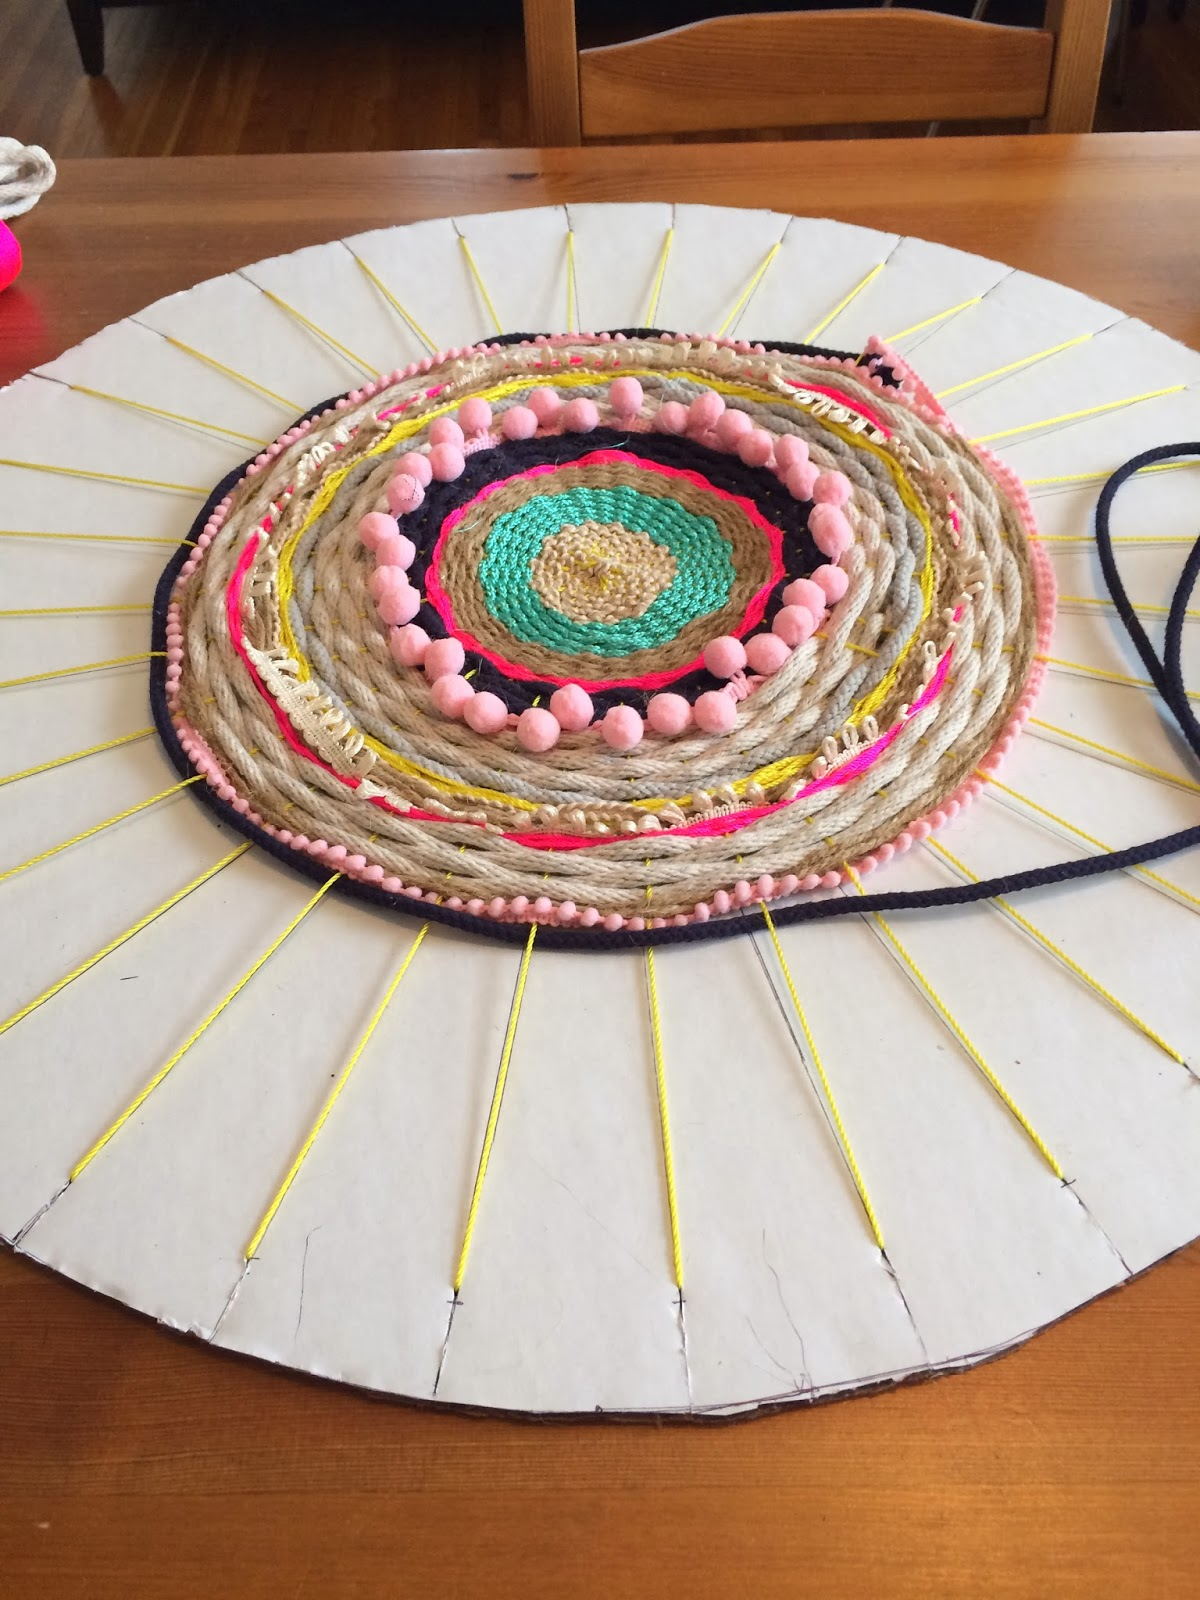 DIY Woven Pom-pom Rope Rug | Red Lipstick   French Toast